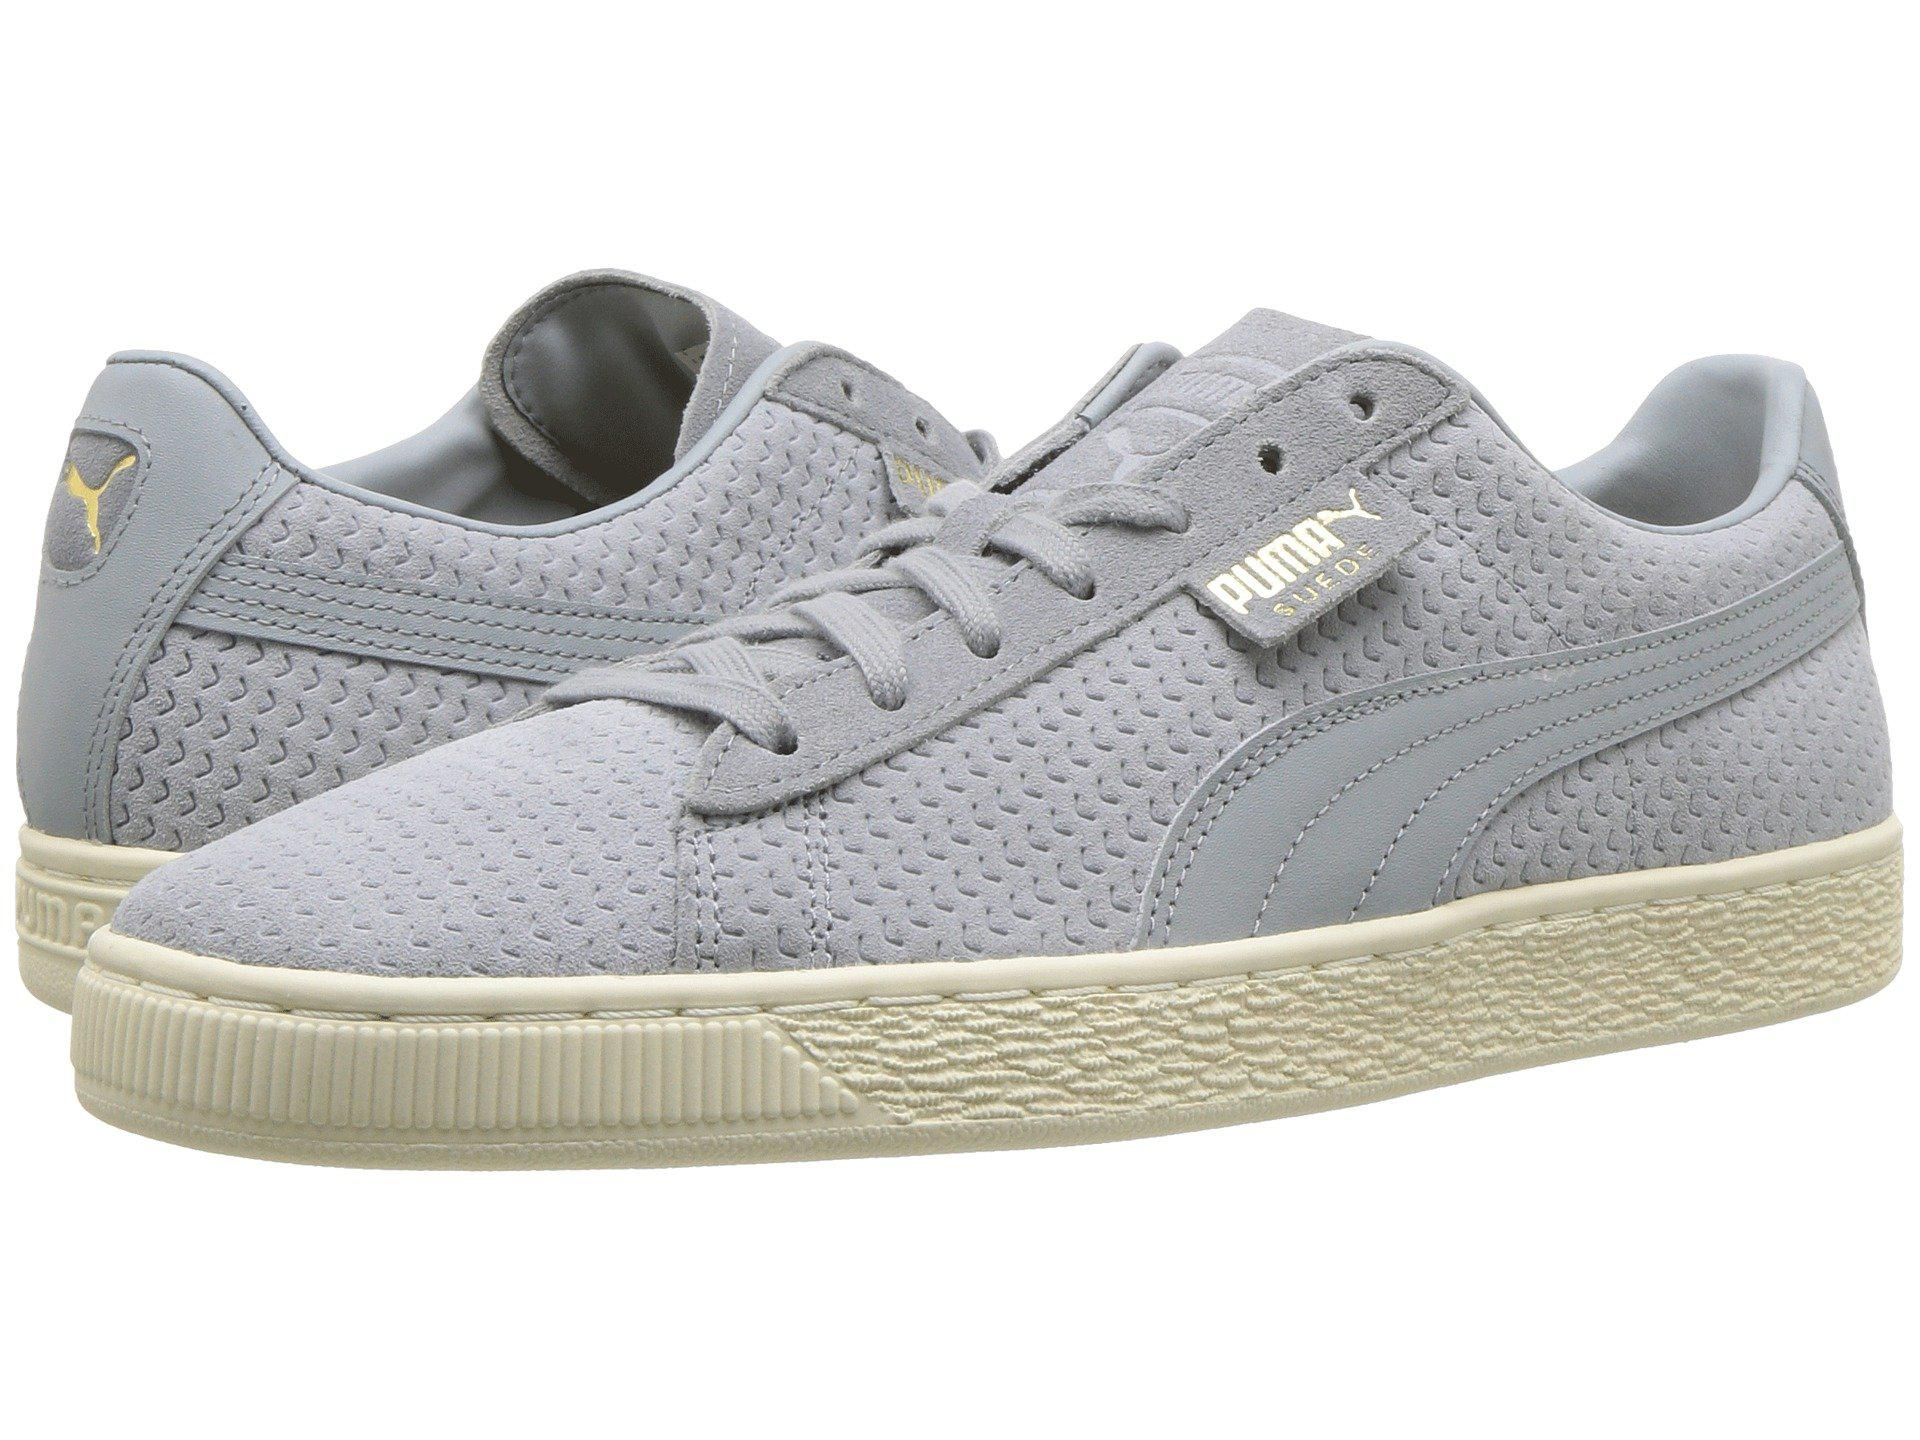 6b575c58fcdfc0 Gallery. Previously sold at  Zappos · Women s Puma Classic Women s Puma  Classic Sneaker ...